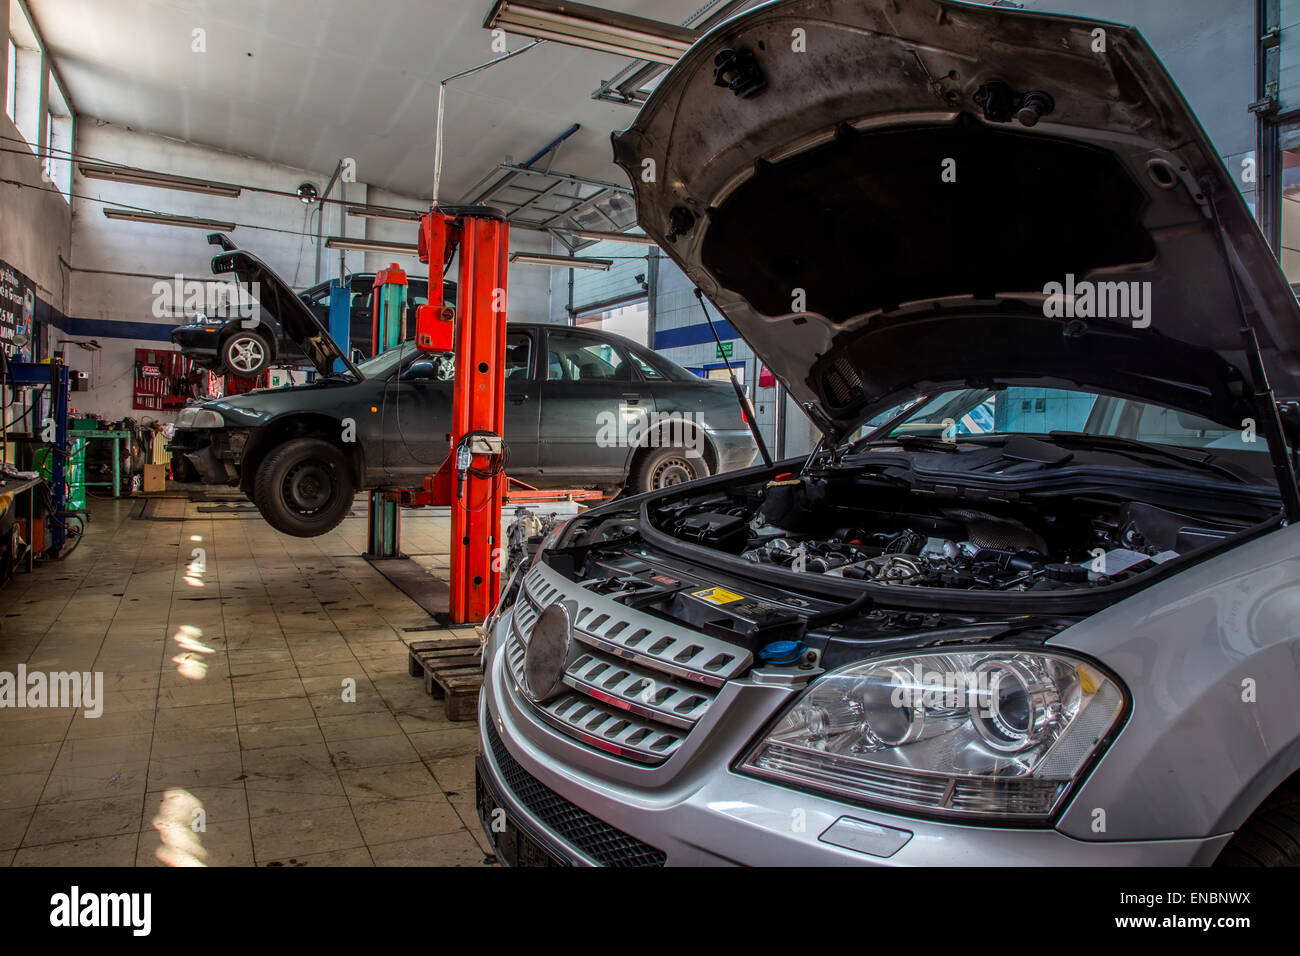 Old style car service with the cars inside Stock Photo: 82007910 - Alamy